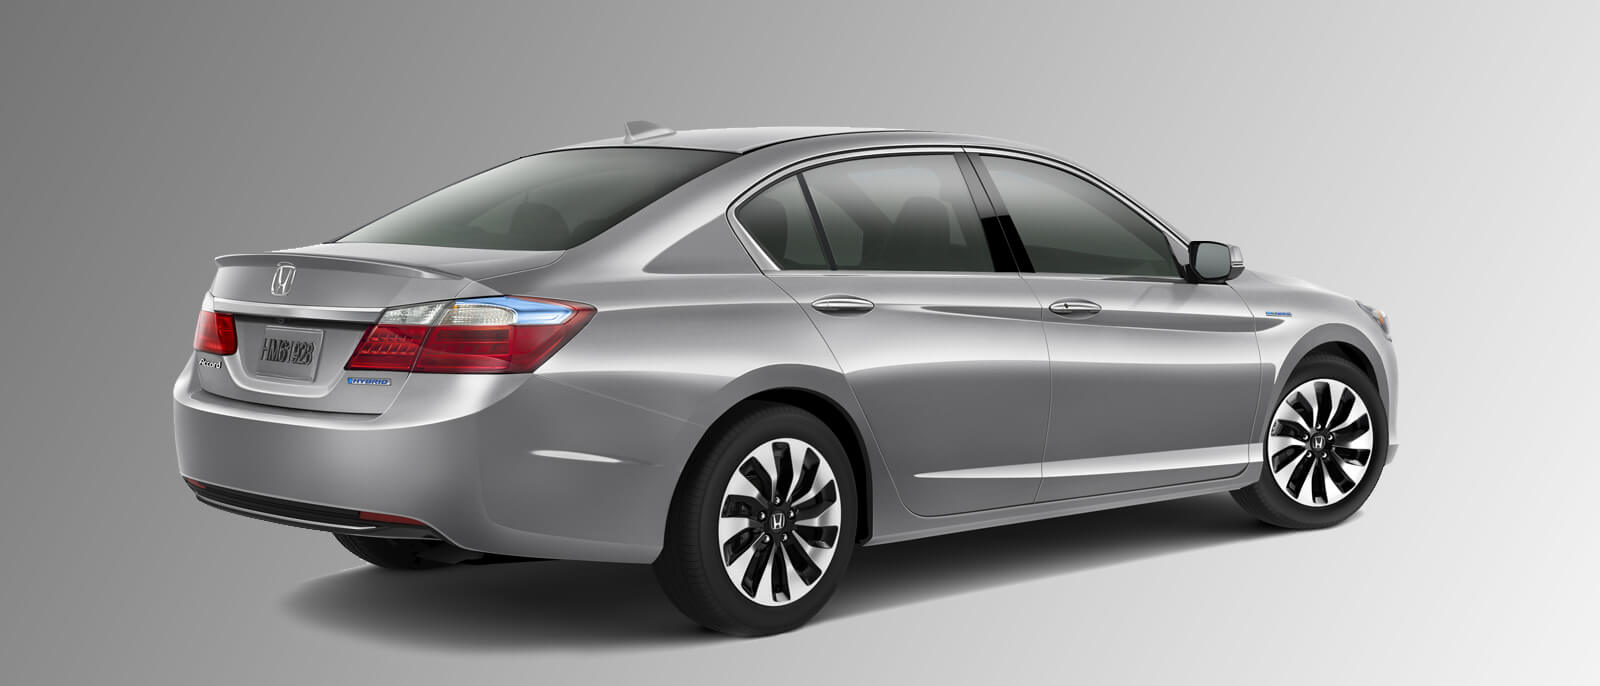 2015 Honda Accord Hybrid rear view in silver